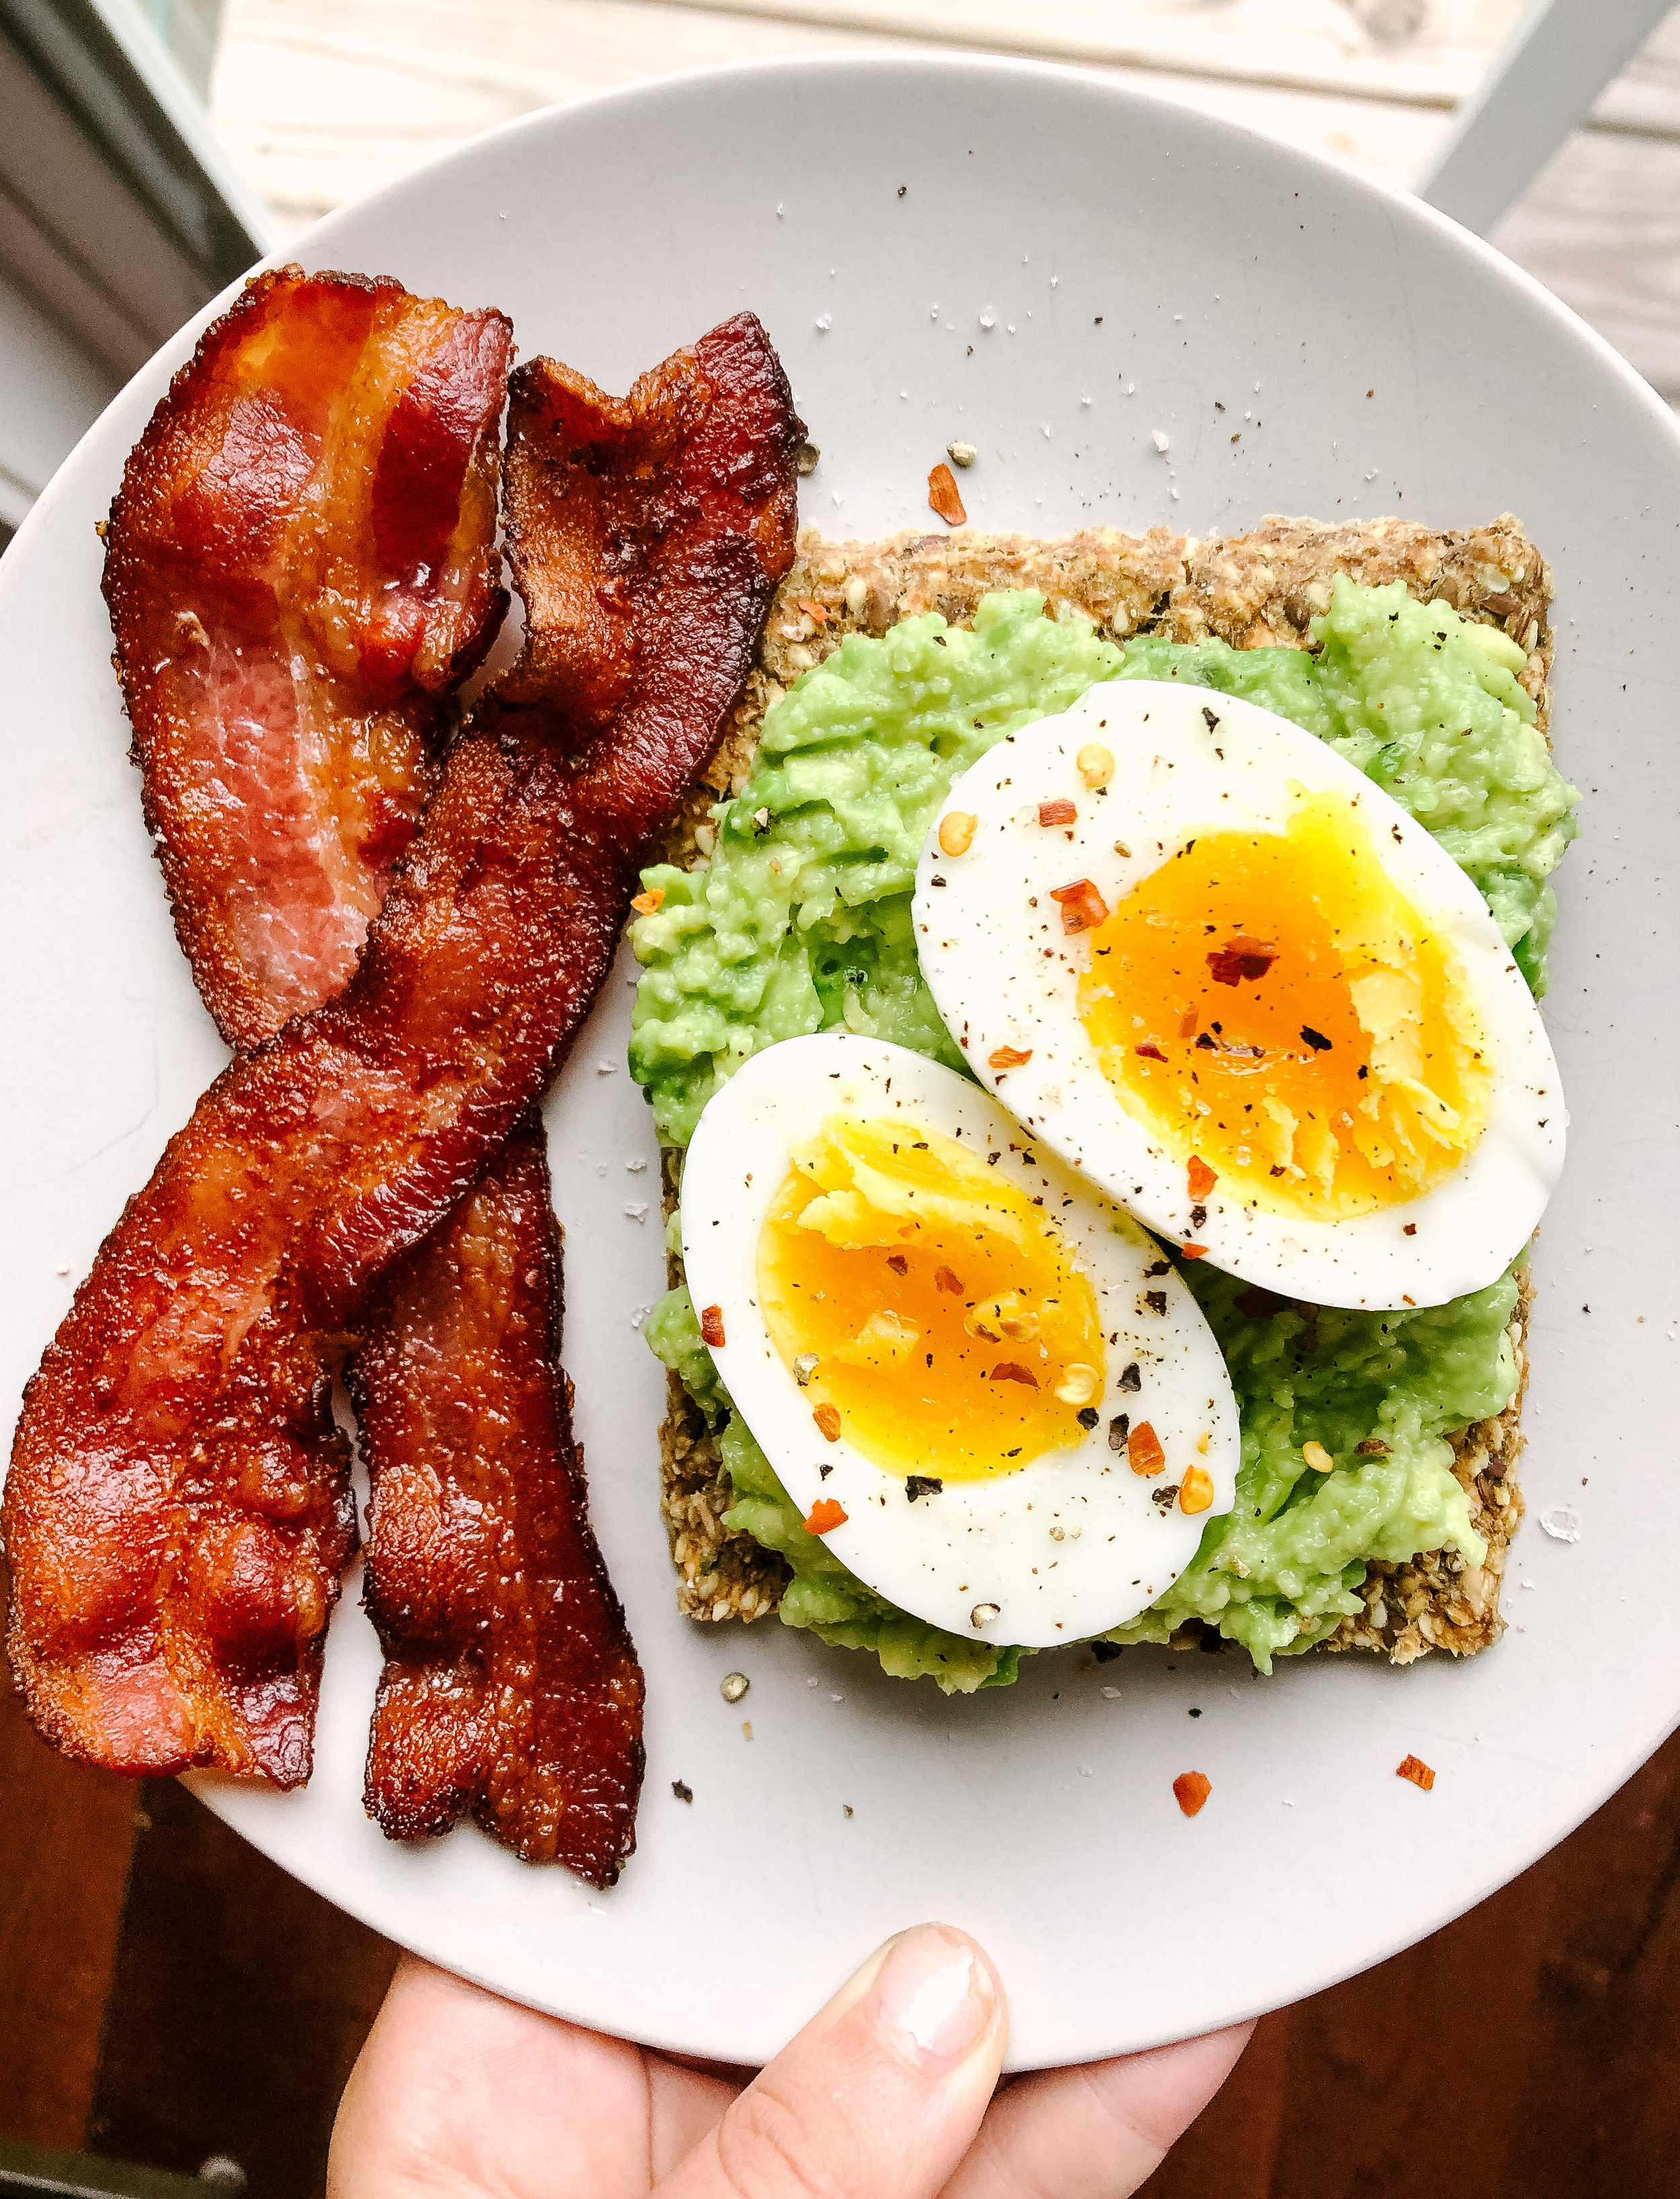 If I am going to eat bacon, I need it to be crispy bacon. I have found a method to make perfectly crispy bacon every single time. This works for all types of bacon and is perfect for meal prepping larger quantities.